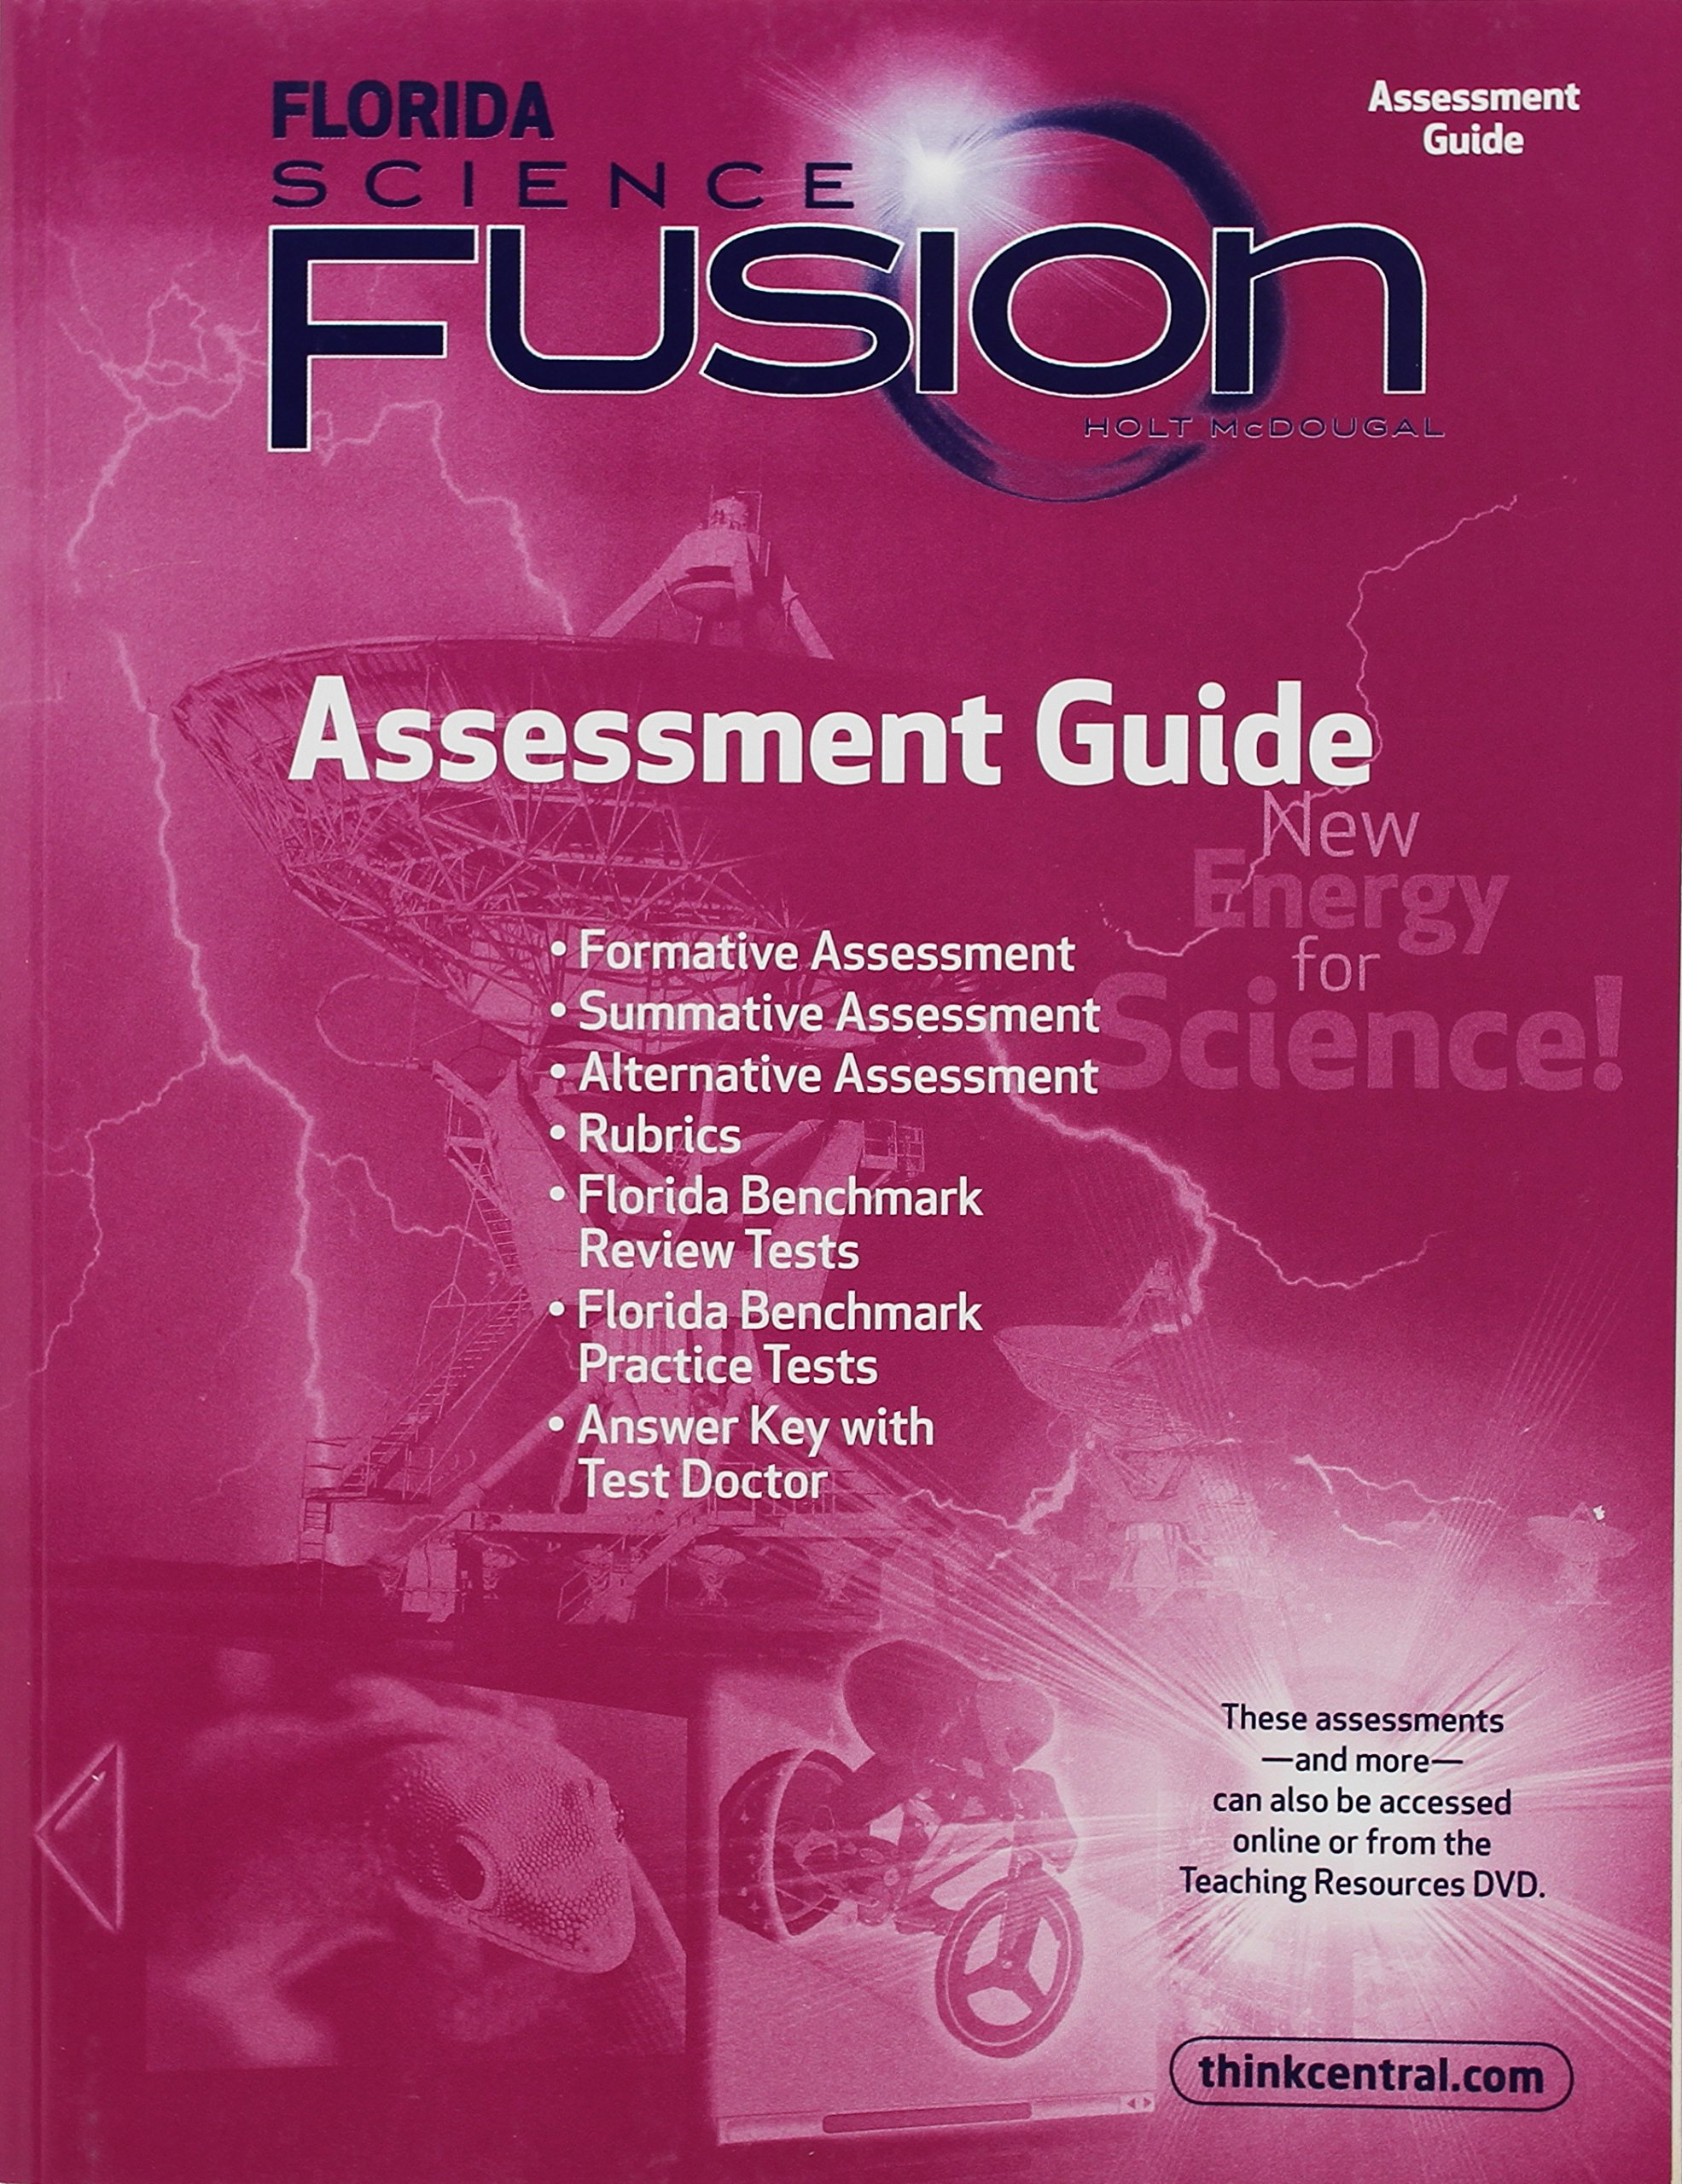 Holt mcdougal science fusion florida assessment guide grade 6 holt holt mcdougal science fusion florida assessment guide grade 6 holt mcdougal 9780547365930 amazon books fandeluxe Gallery